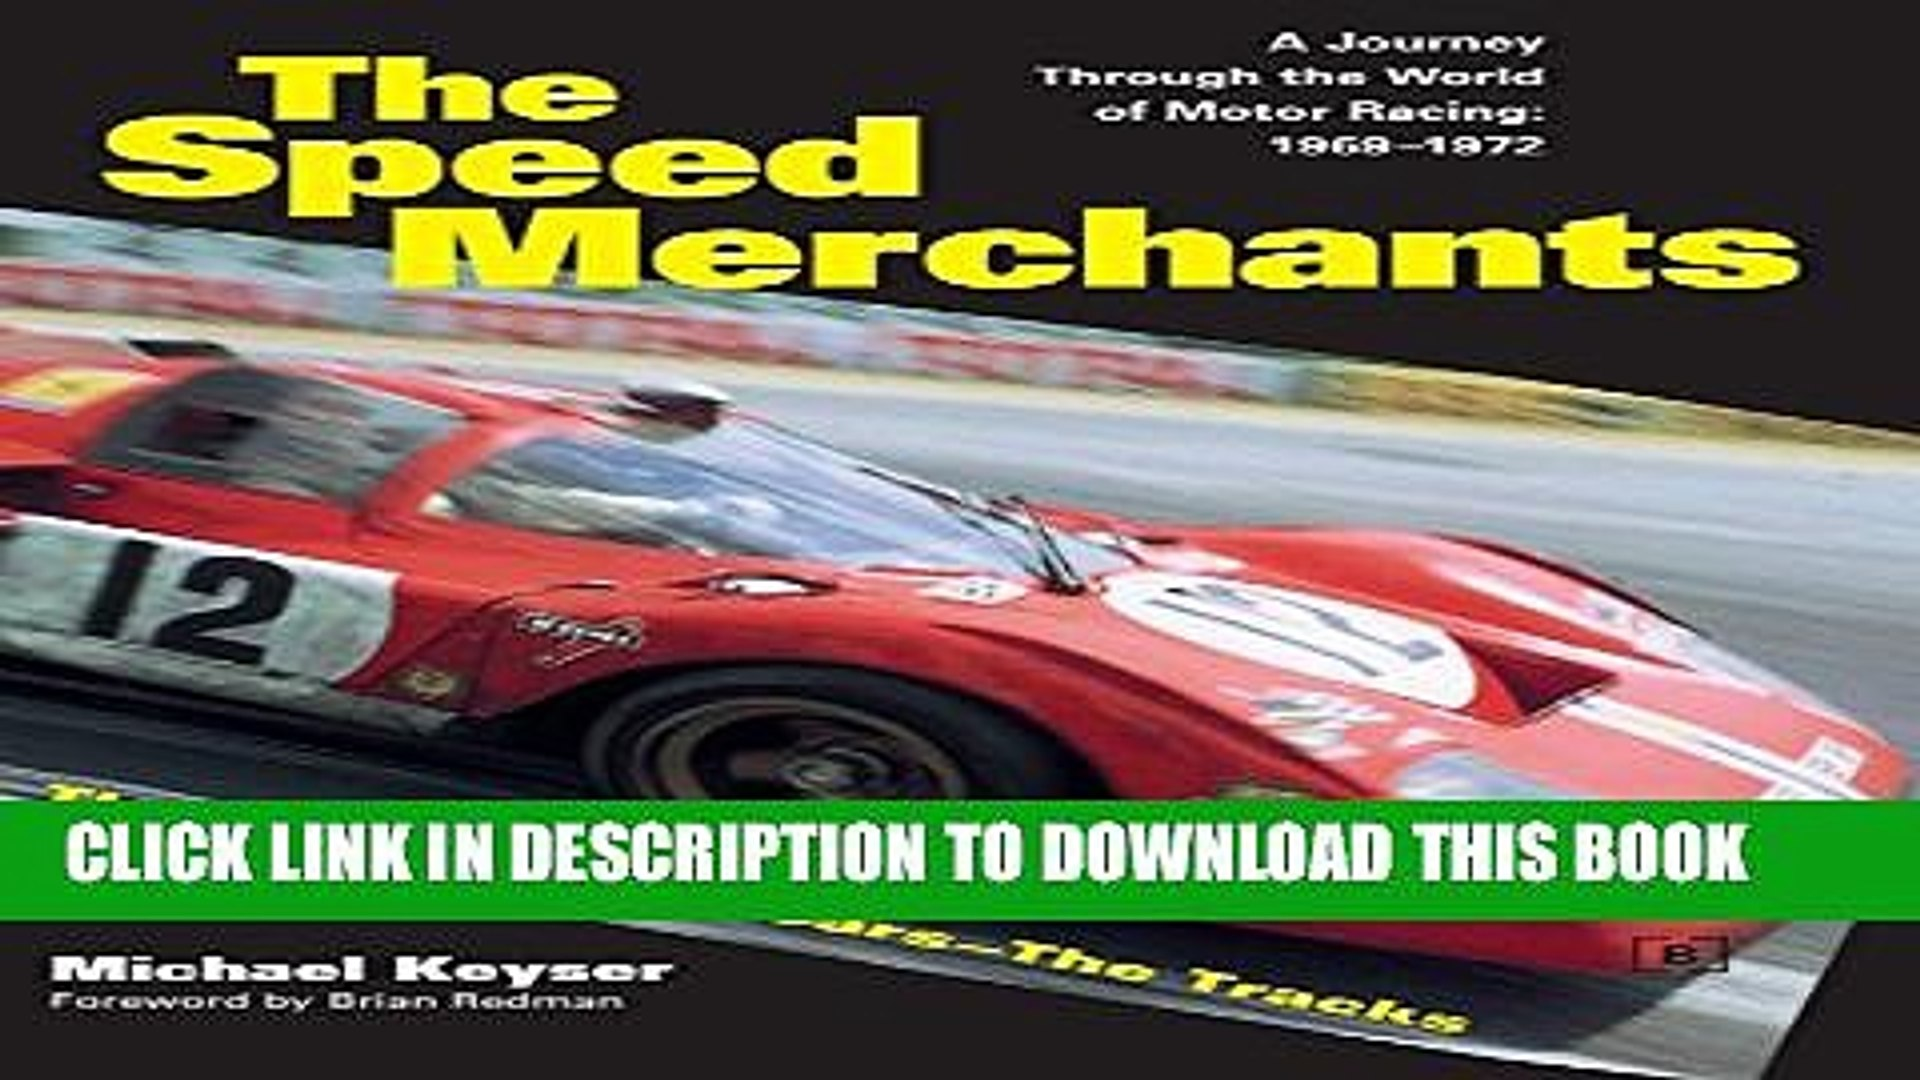 [PDF] The Speed Merchants: A Journey Through the World of Motor Racing - 1969-1972 Popular Colection